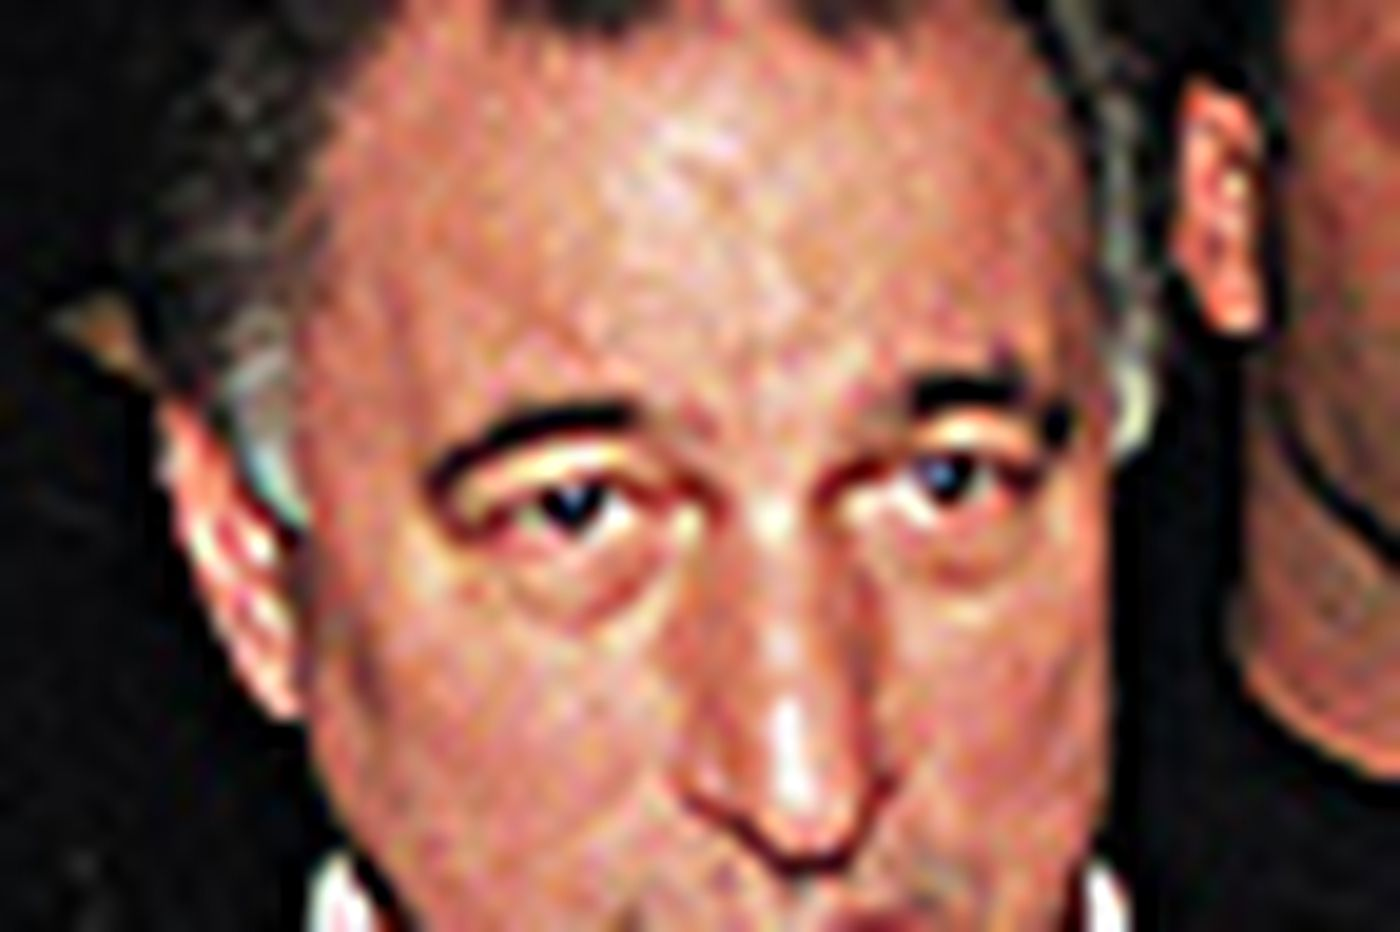 Potential government witness in Ligambi trial an apparent suicide